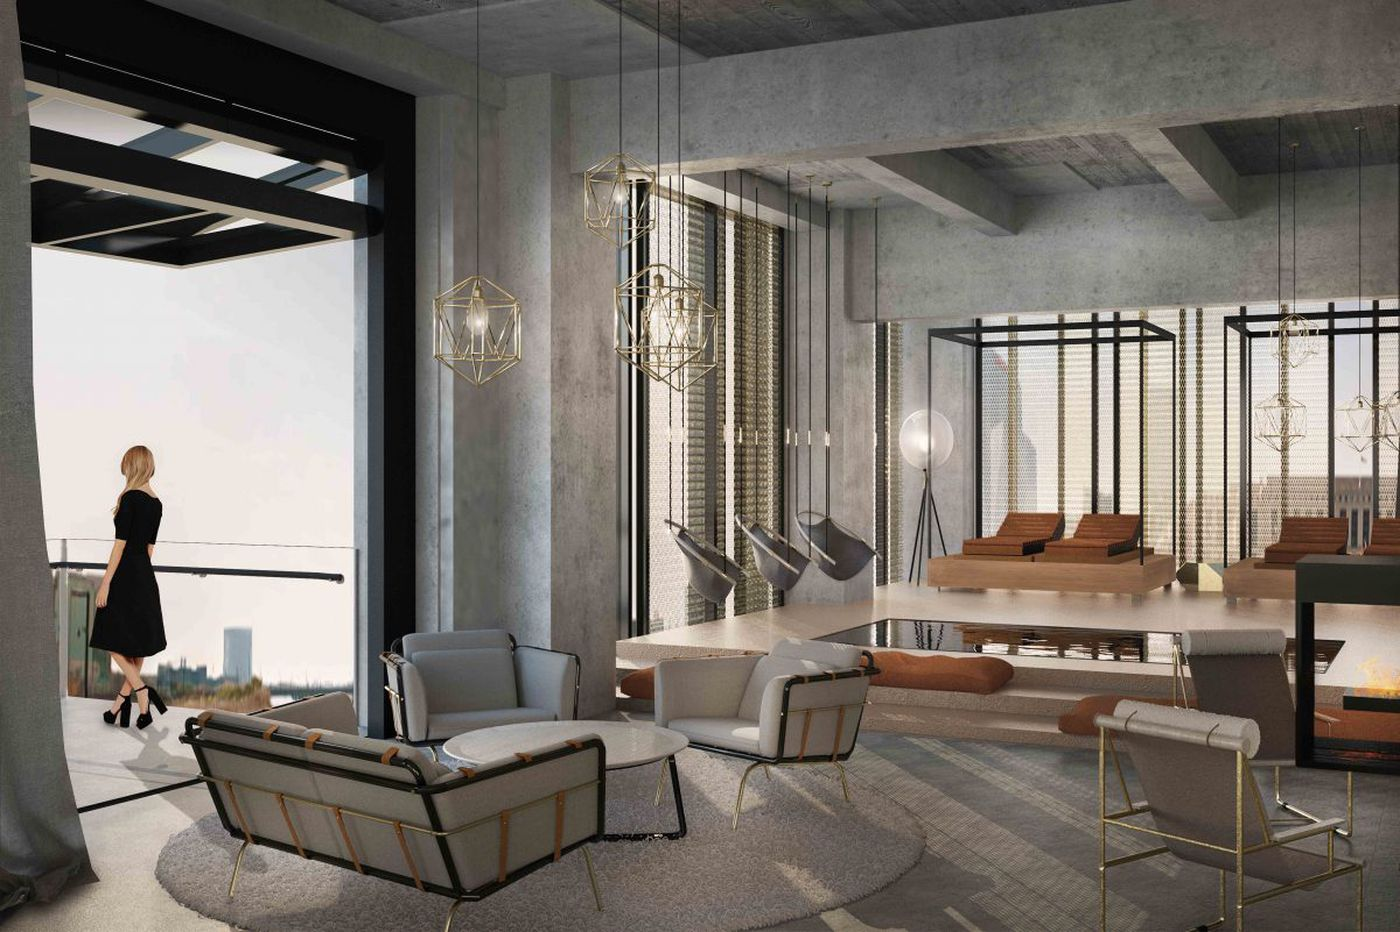 Posh new Philly club to target city's emerging youthful elite